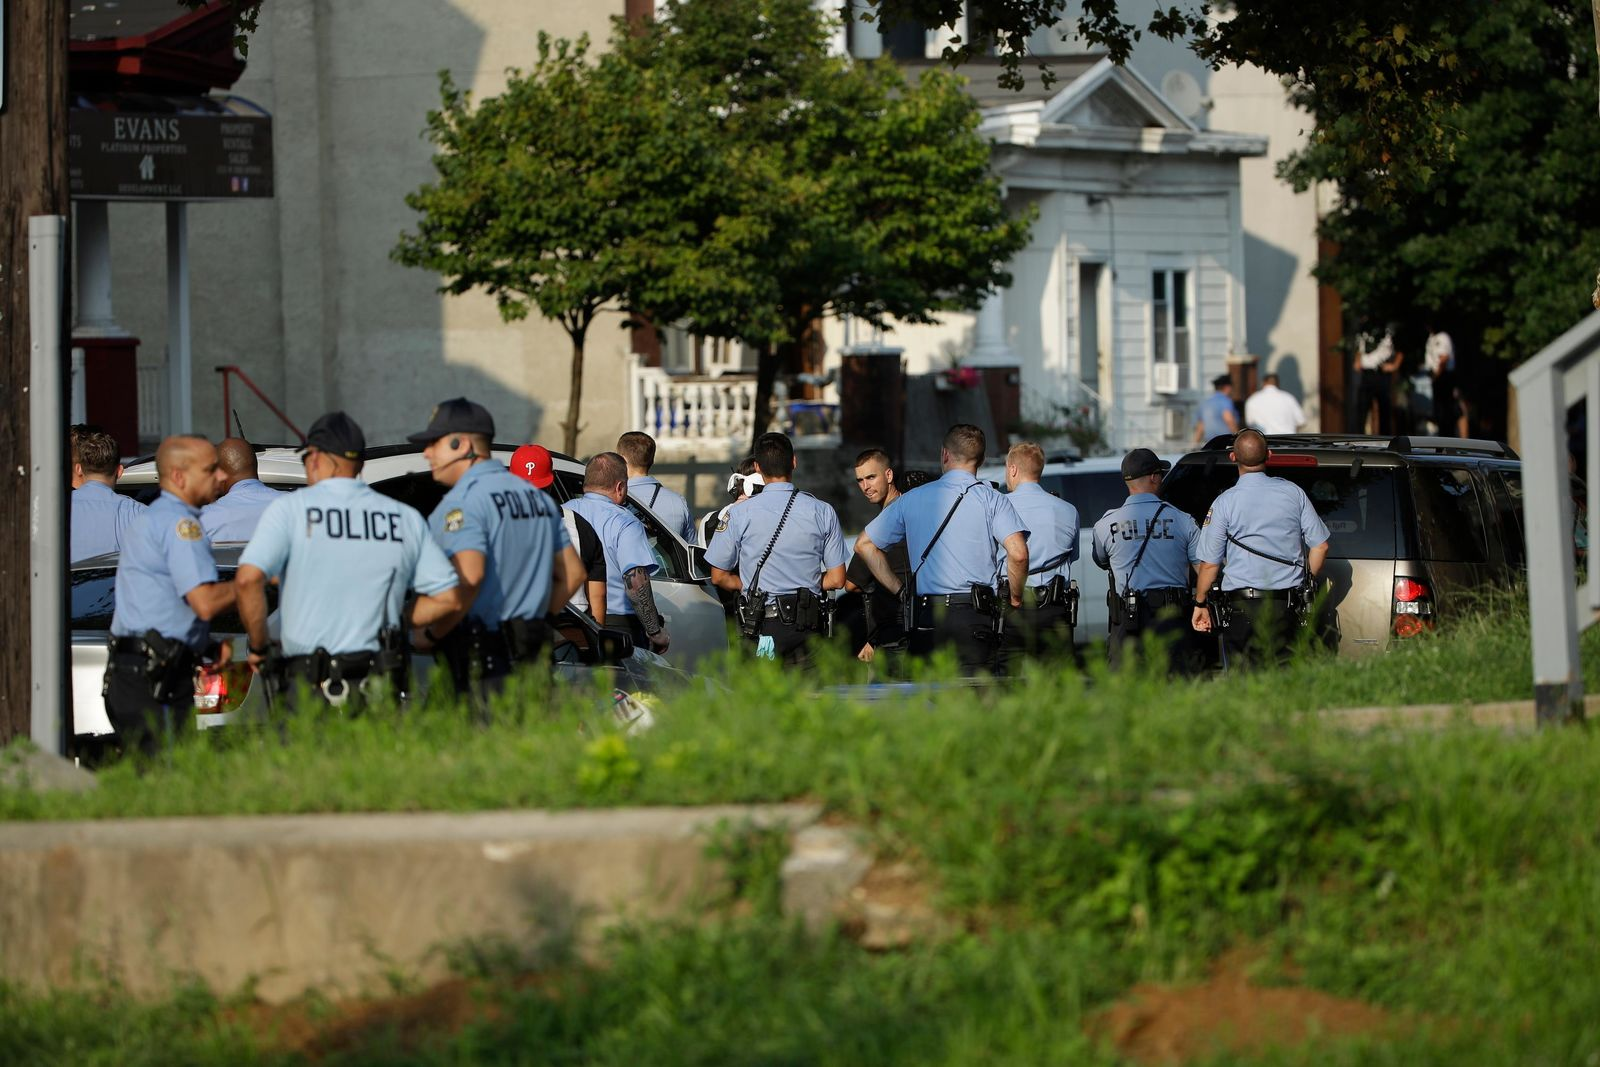 Authorities stage as they respond to an active shooting situation, Wednesday, Aug. 14, 2019, in the Nicetown neighborhood of Philadelphia. (AP Photo/Matt Rourke)